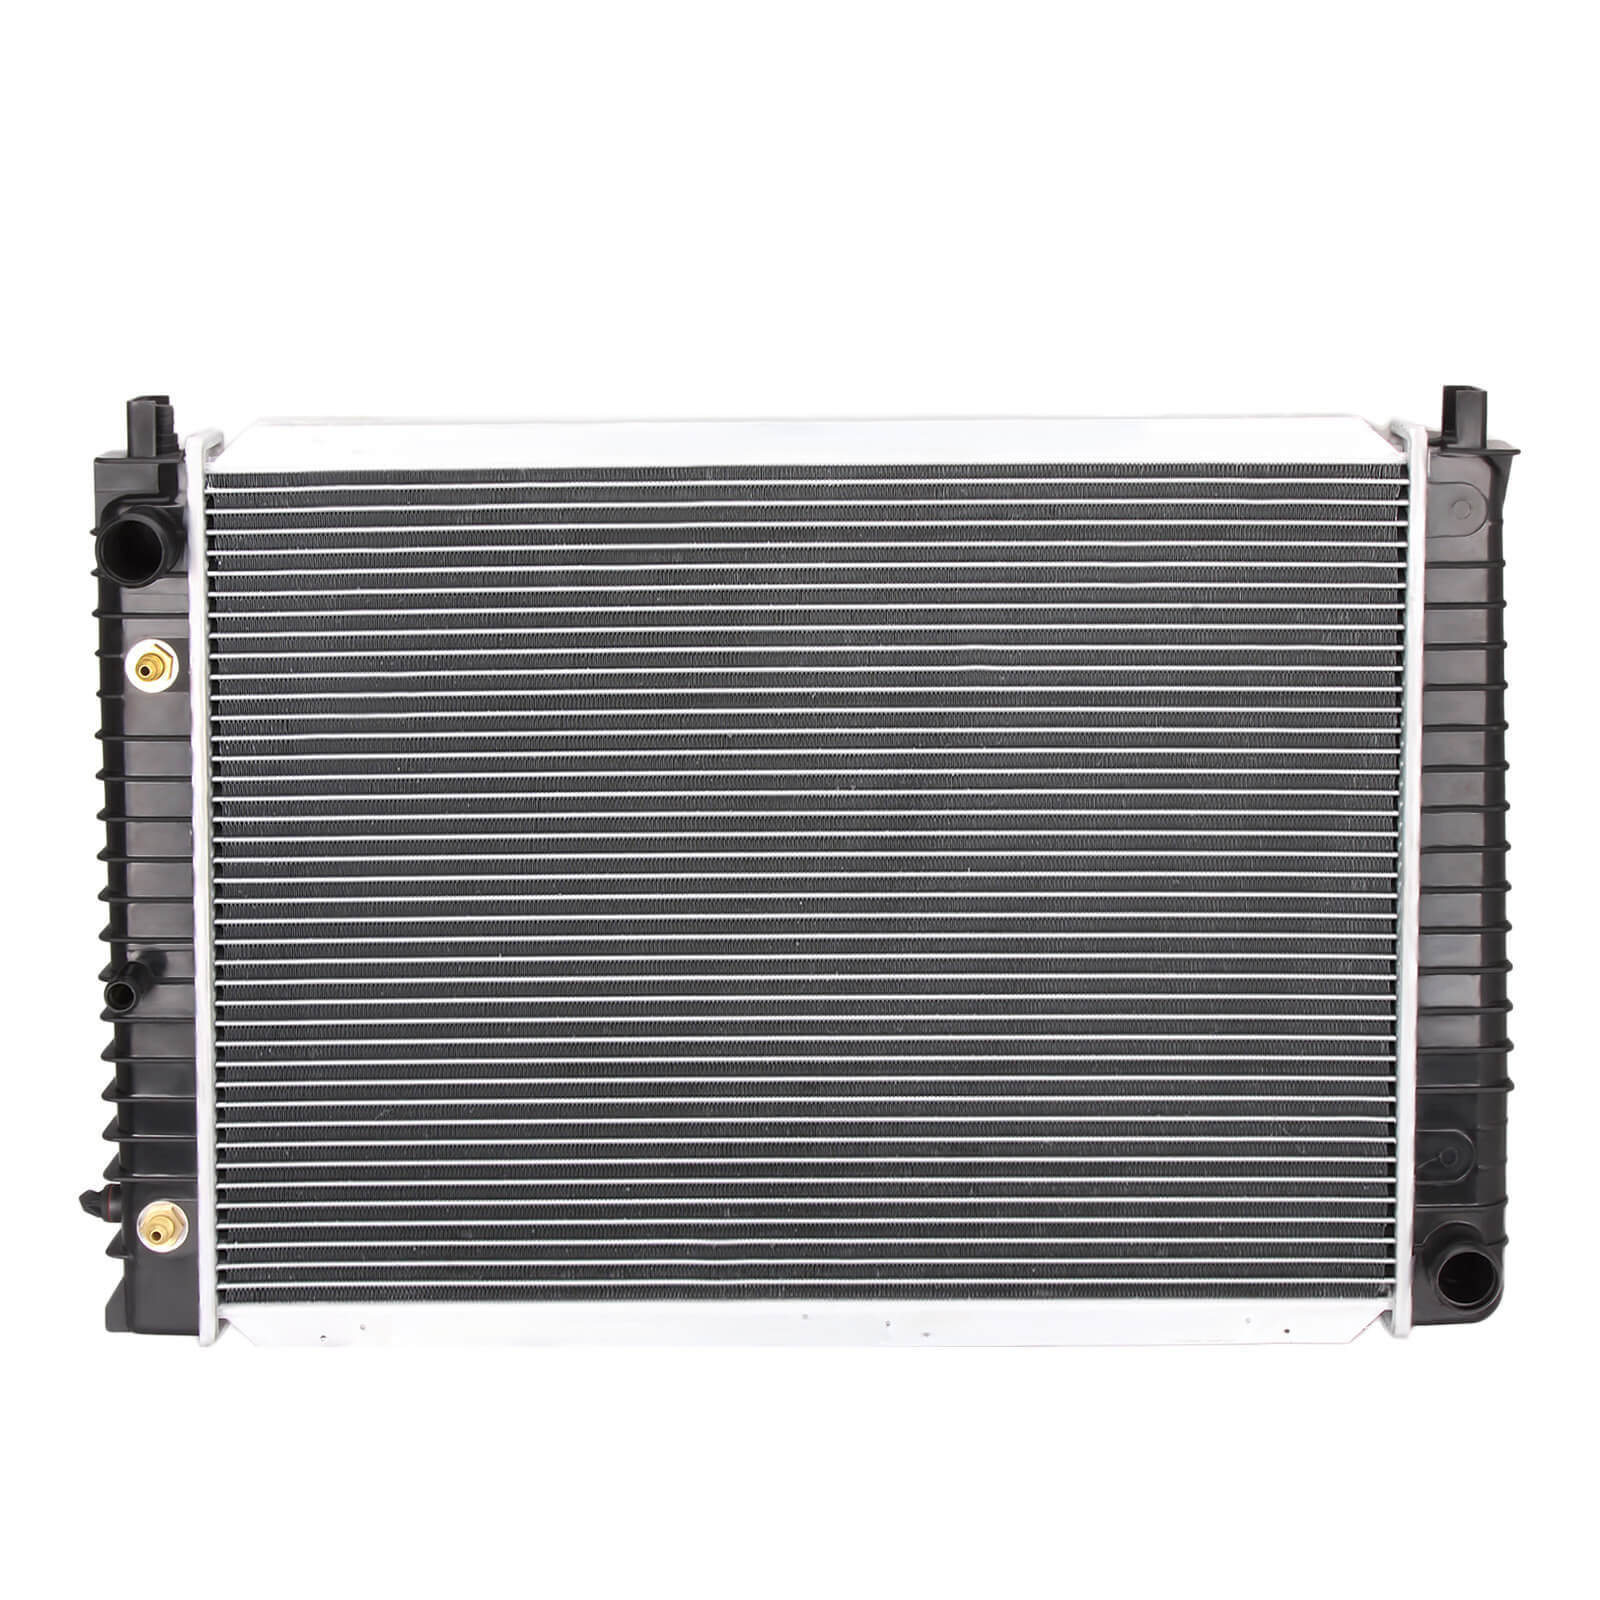 Dromedary Brand 740 aluminum custom volvo radiator replacement